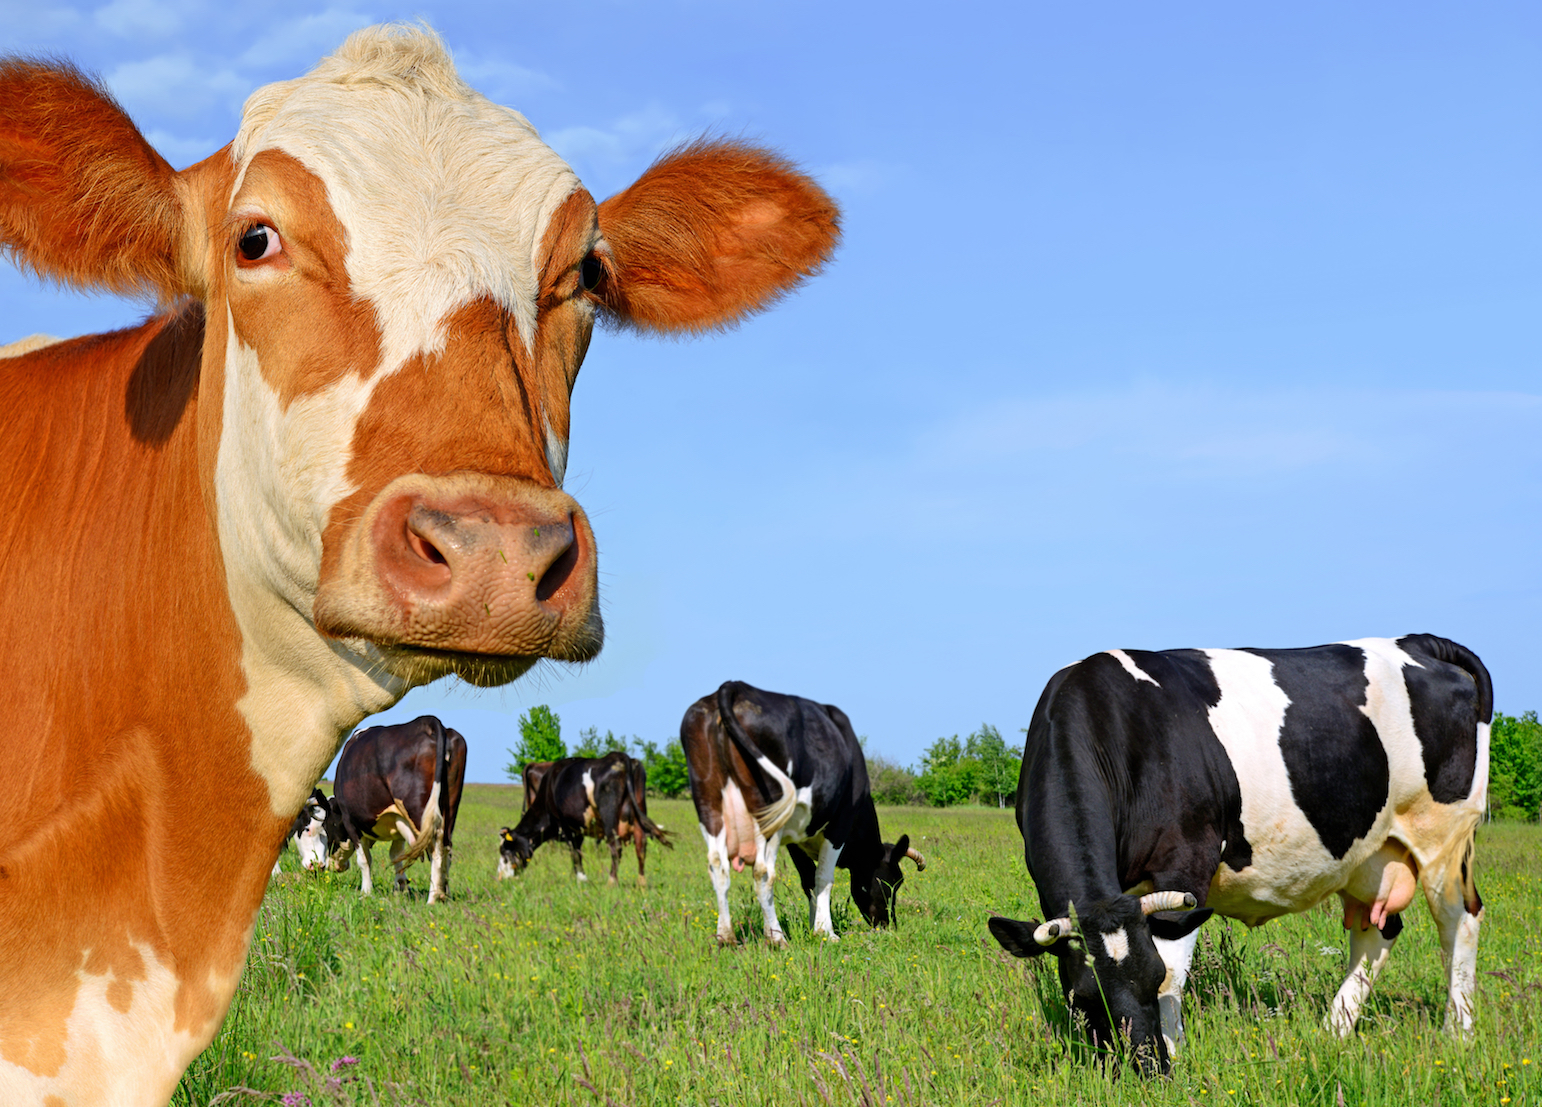 Researchers have identified the the behavior of a cow herd is a complex system influenced by friction within the group.